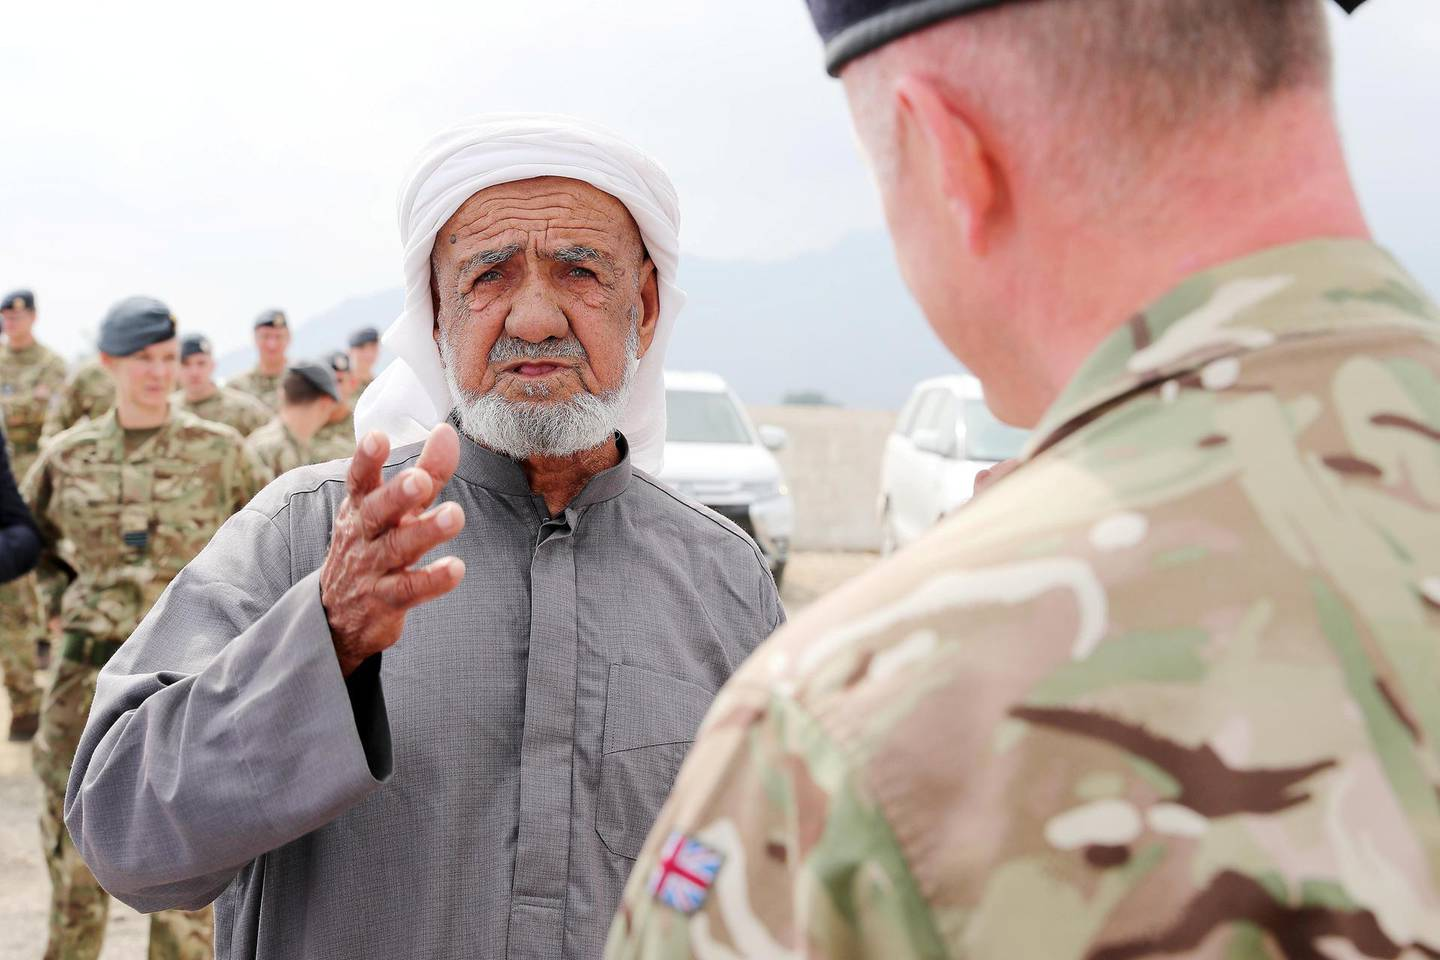 FUJAIRAH , UNITED ARAB EMIRATES , FEB 14  – 2018 :- Mohamed Homoud Hazzaa Alsereidi , Emirati talking to Captain Jim Lowther from Royal Navy , Defence Attaché , Abu Dhabi during the interview after the memorial service of William Henry Donnelly , Sergeant , Royal Air Force who was died on 14 February 1943 after his Wellington Bomber crashed during the WW2 in Fujairah. Mohamed Homoud Hazzaa Alsereidi was young boy when the plane was crashed near his village. ( Pawan Singh / The National ) For News. Story by John